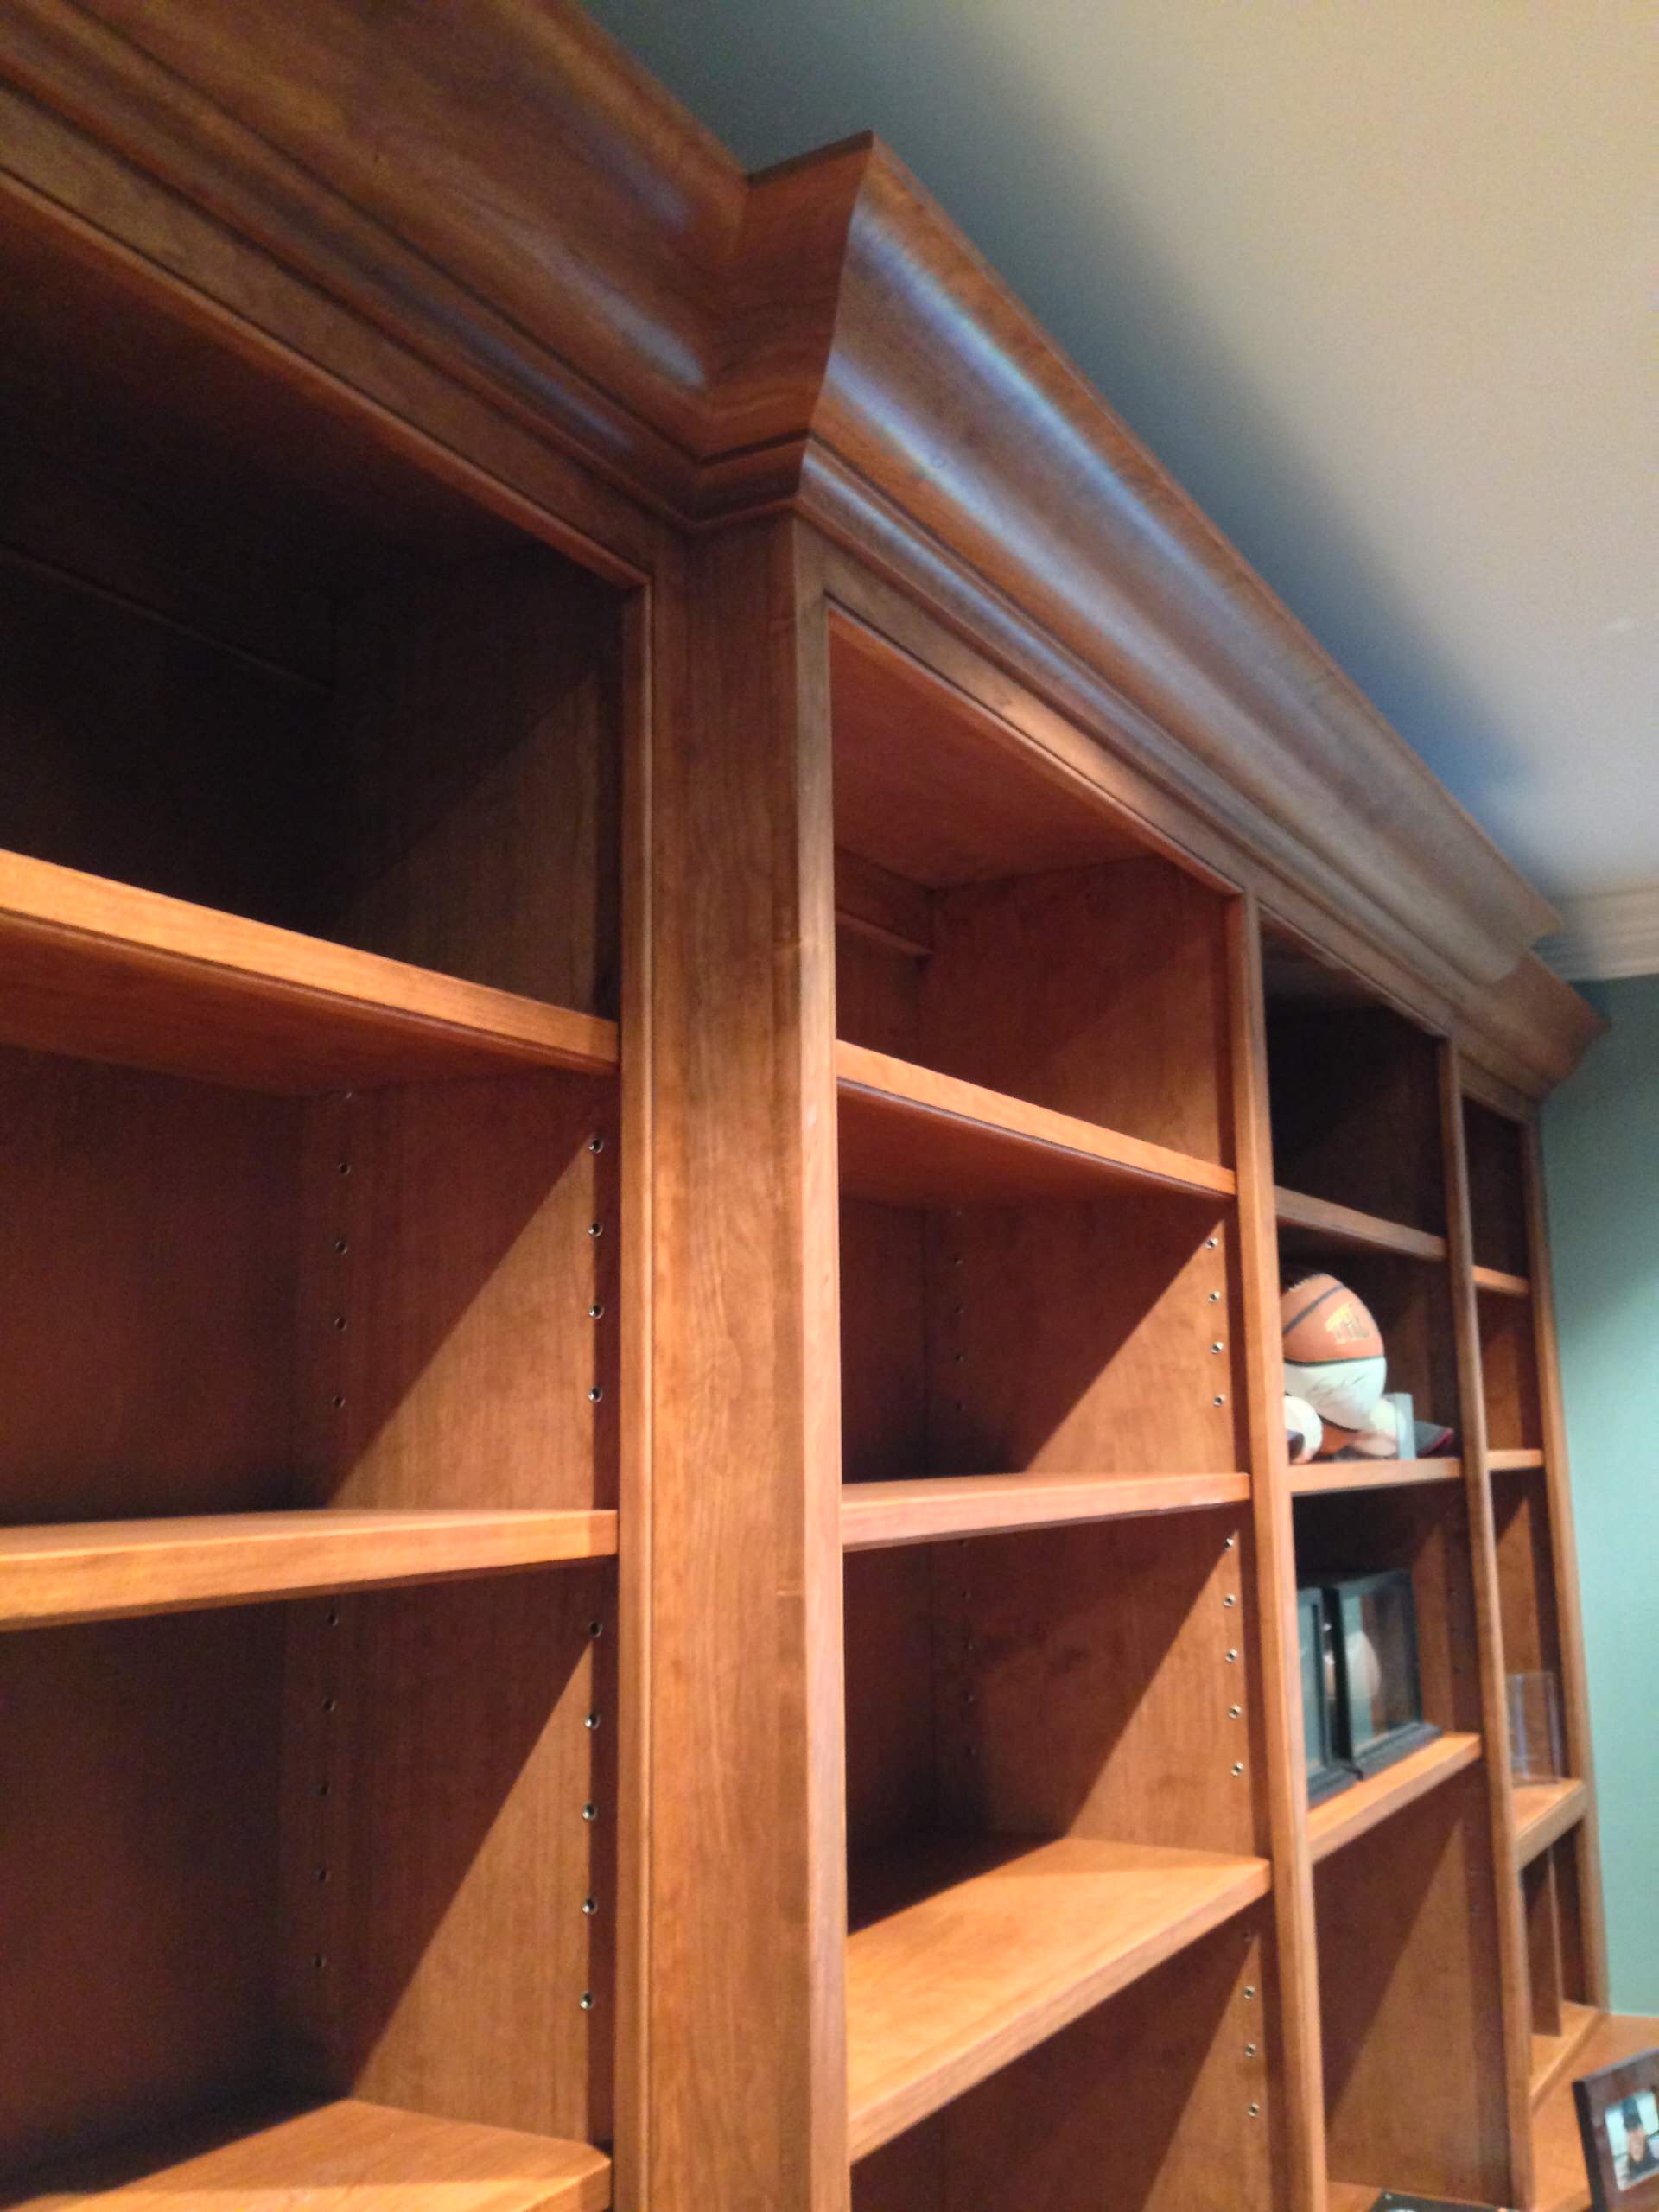 Gilley's clients have come to expect this level of detail and quality.